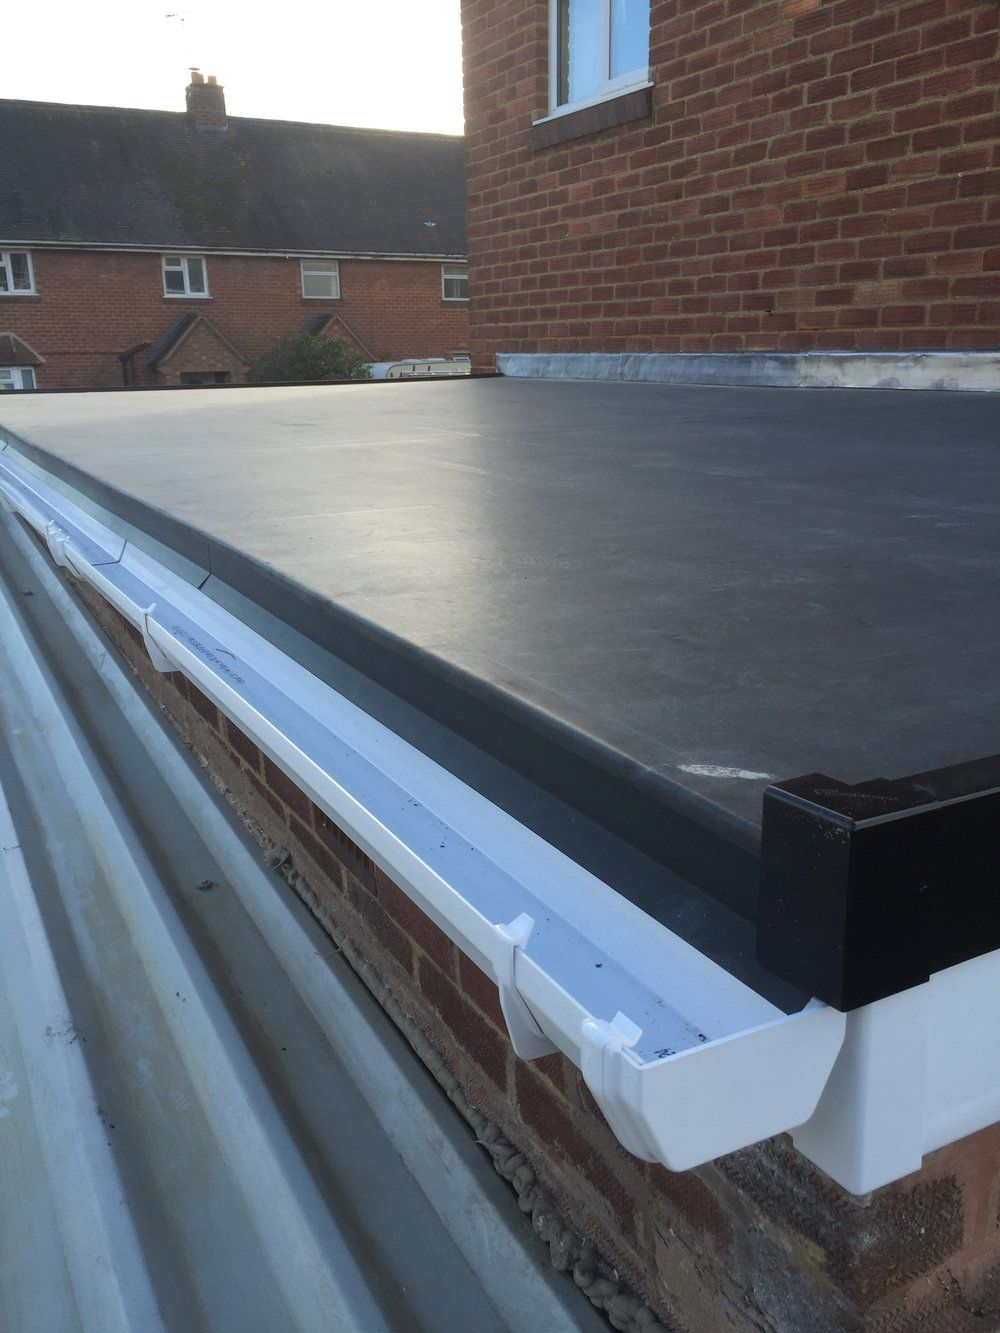 Rubber Flat Roof Cost In 2020 Rubber Flat Roof Flat Roof Roof Cost